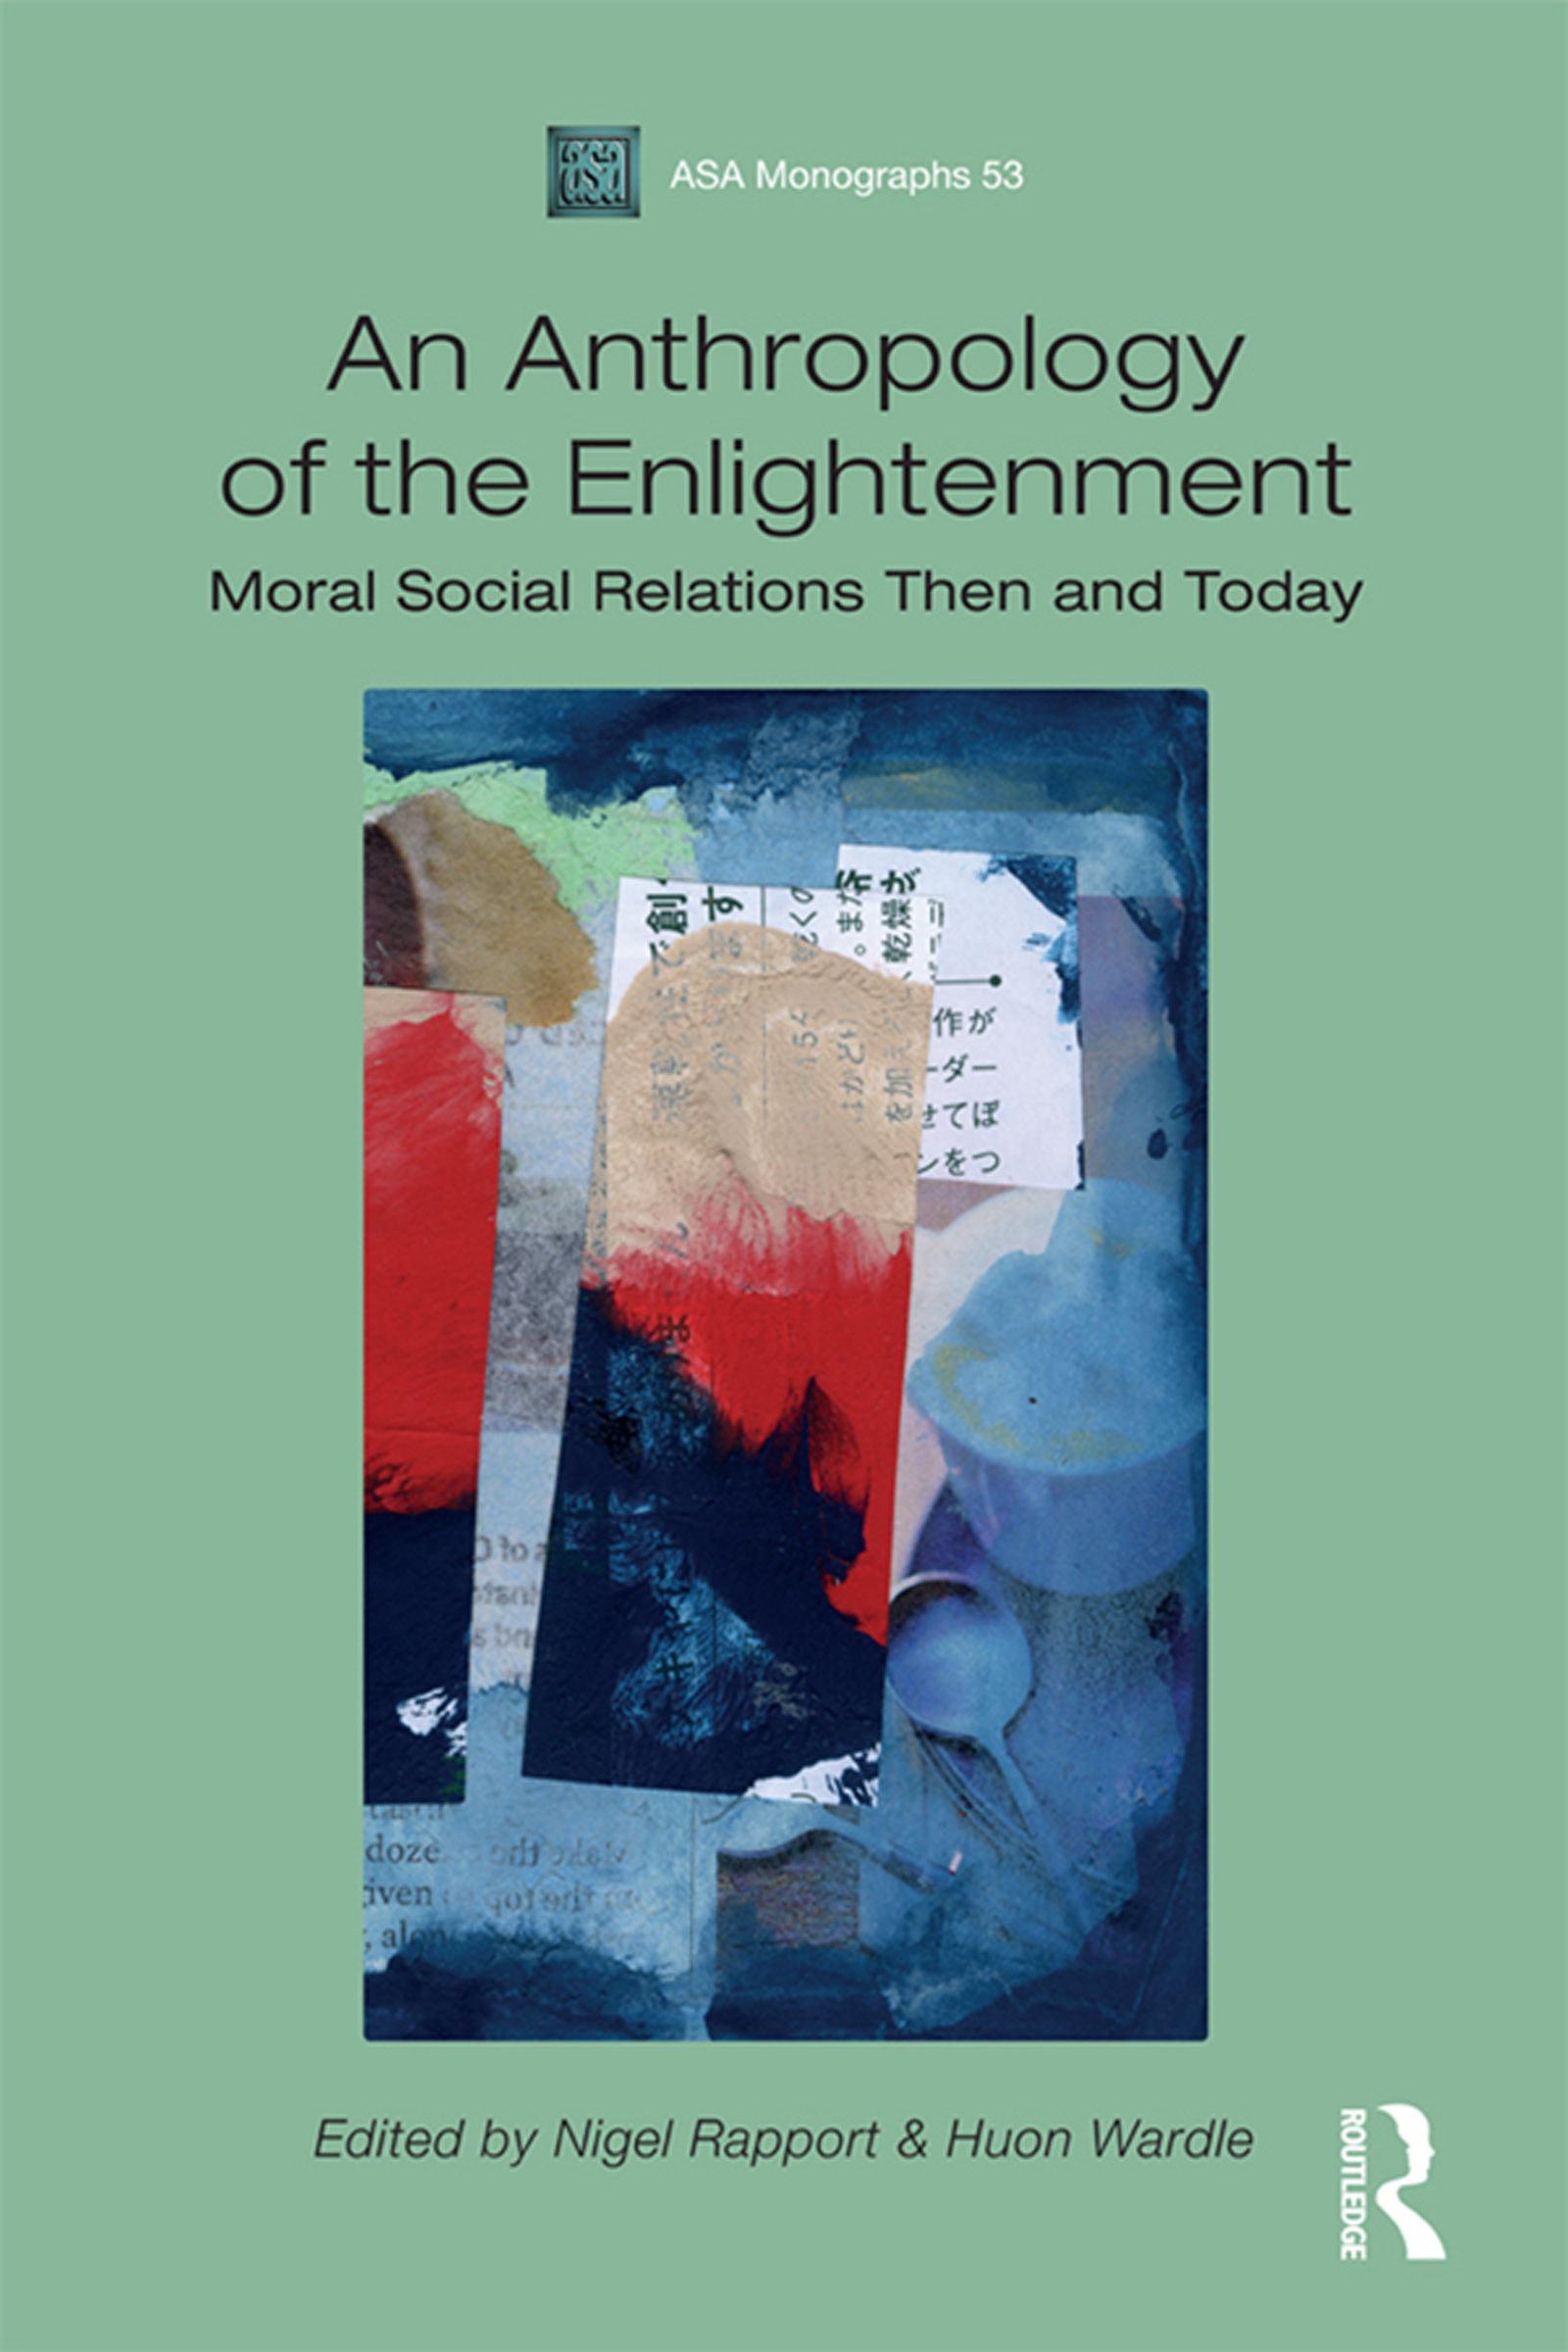 Book cover of Anthropology of Enlightenment